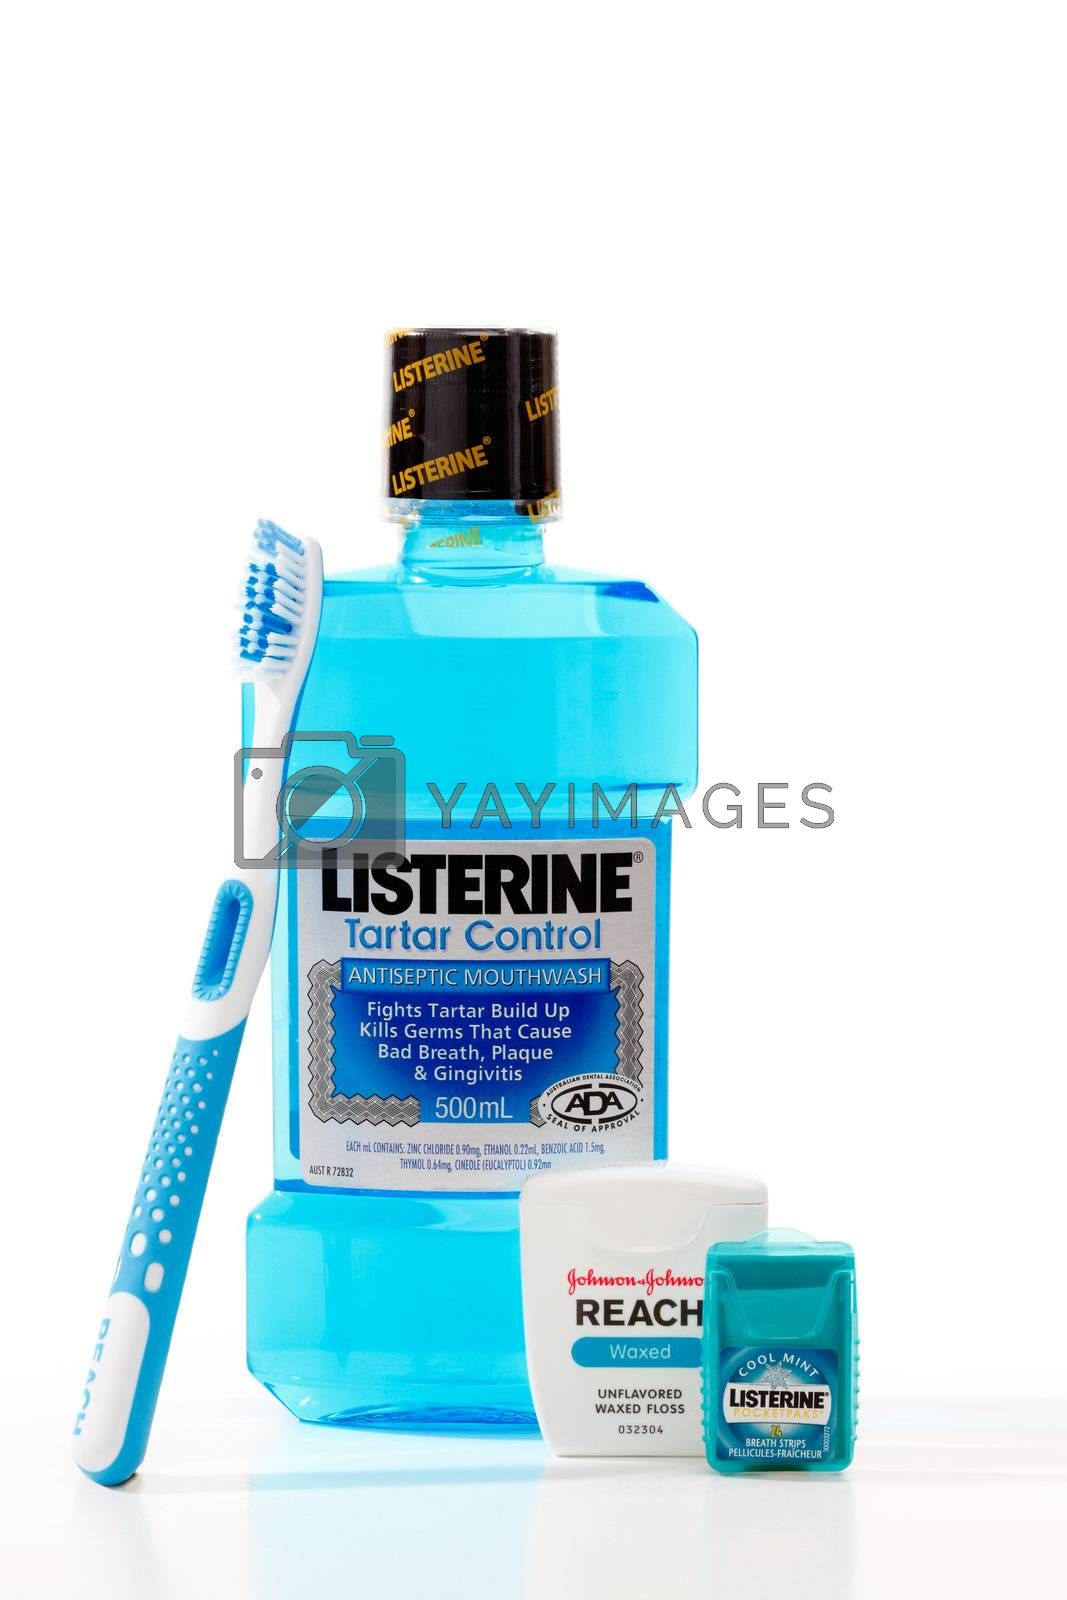 Four dental hygiene products made by Johnson and Johnson.   Products from left to right are, Reach toothbrush, Listerine Tartar Control antiseptic mouthwash, Reach waxed dental floss, and Listerine Pocketpaks Cool Mint breath strips.  Photographed in studio on a white background.  Editorial use only